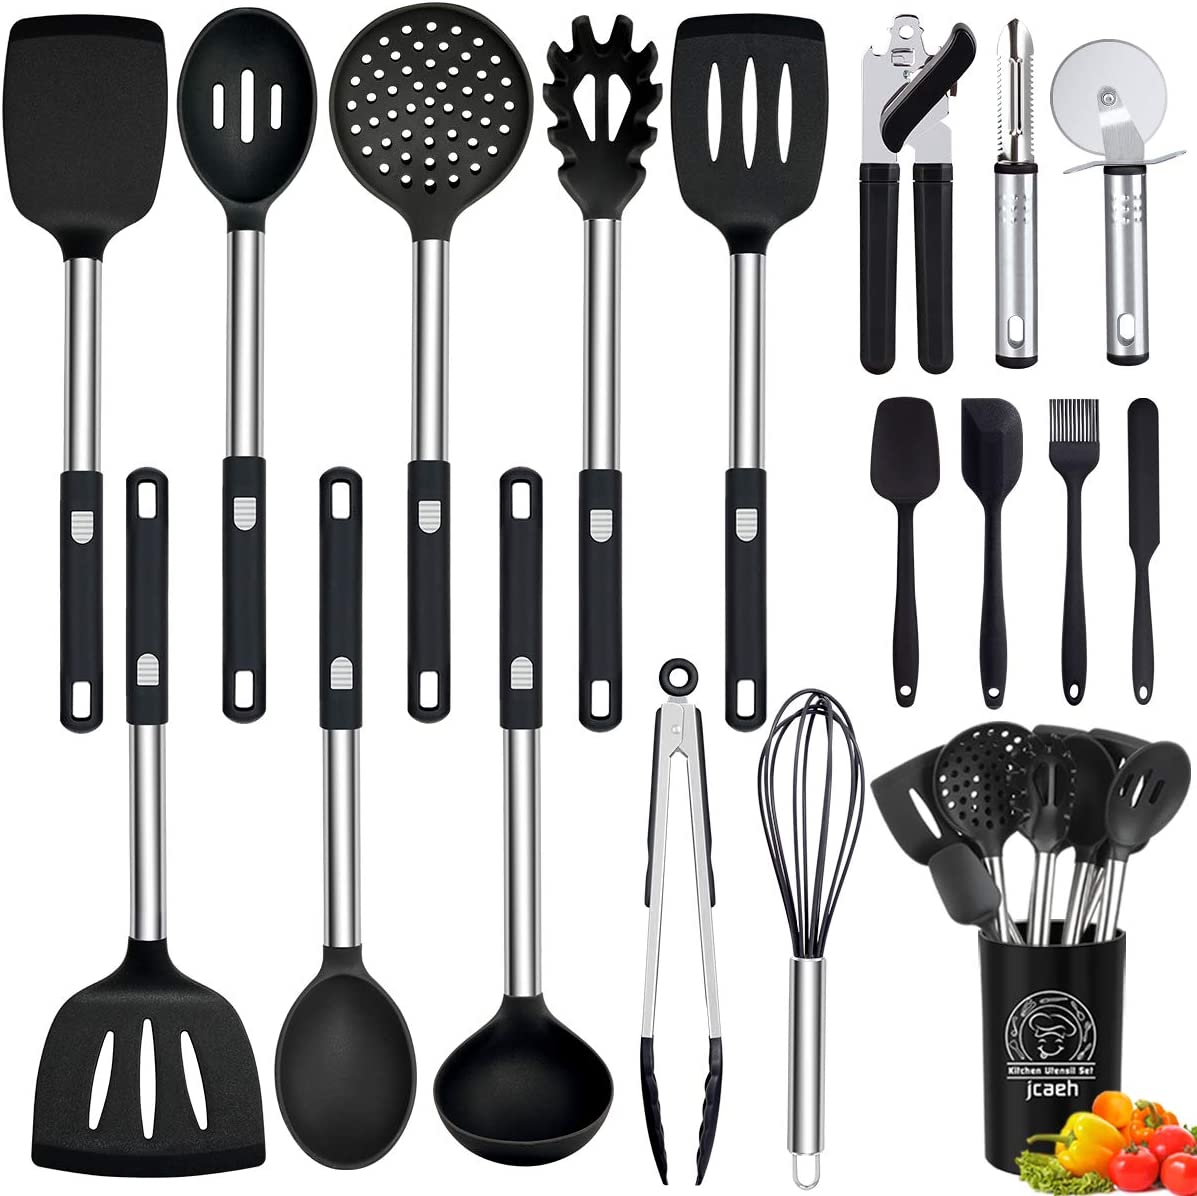 Silicone Kitchen Utensils Set, 18 Pcs Cooking Utensils Set Heat Resistant Non-stick Silicone Cookware with Stainless Steel Handle Can Opener Spatulas Pizza Cutter Kitchen Tools (BPA Free, Non Toxic)